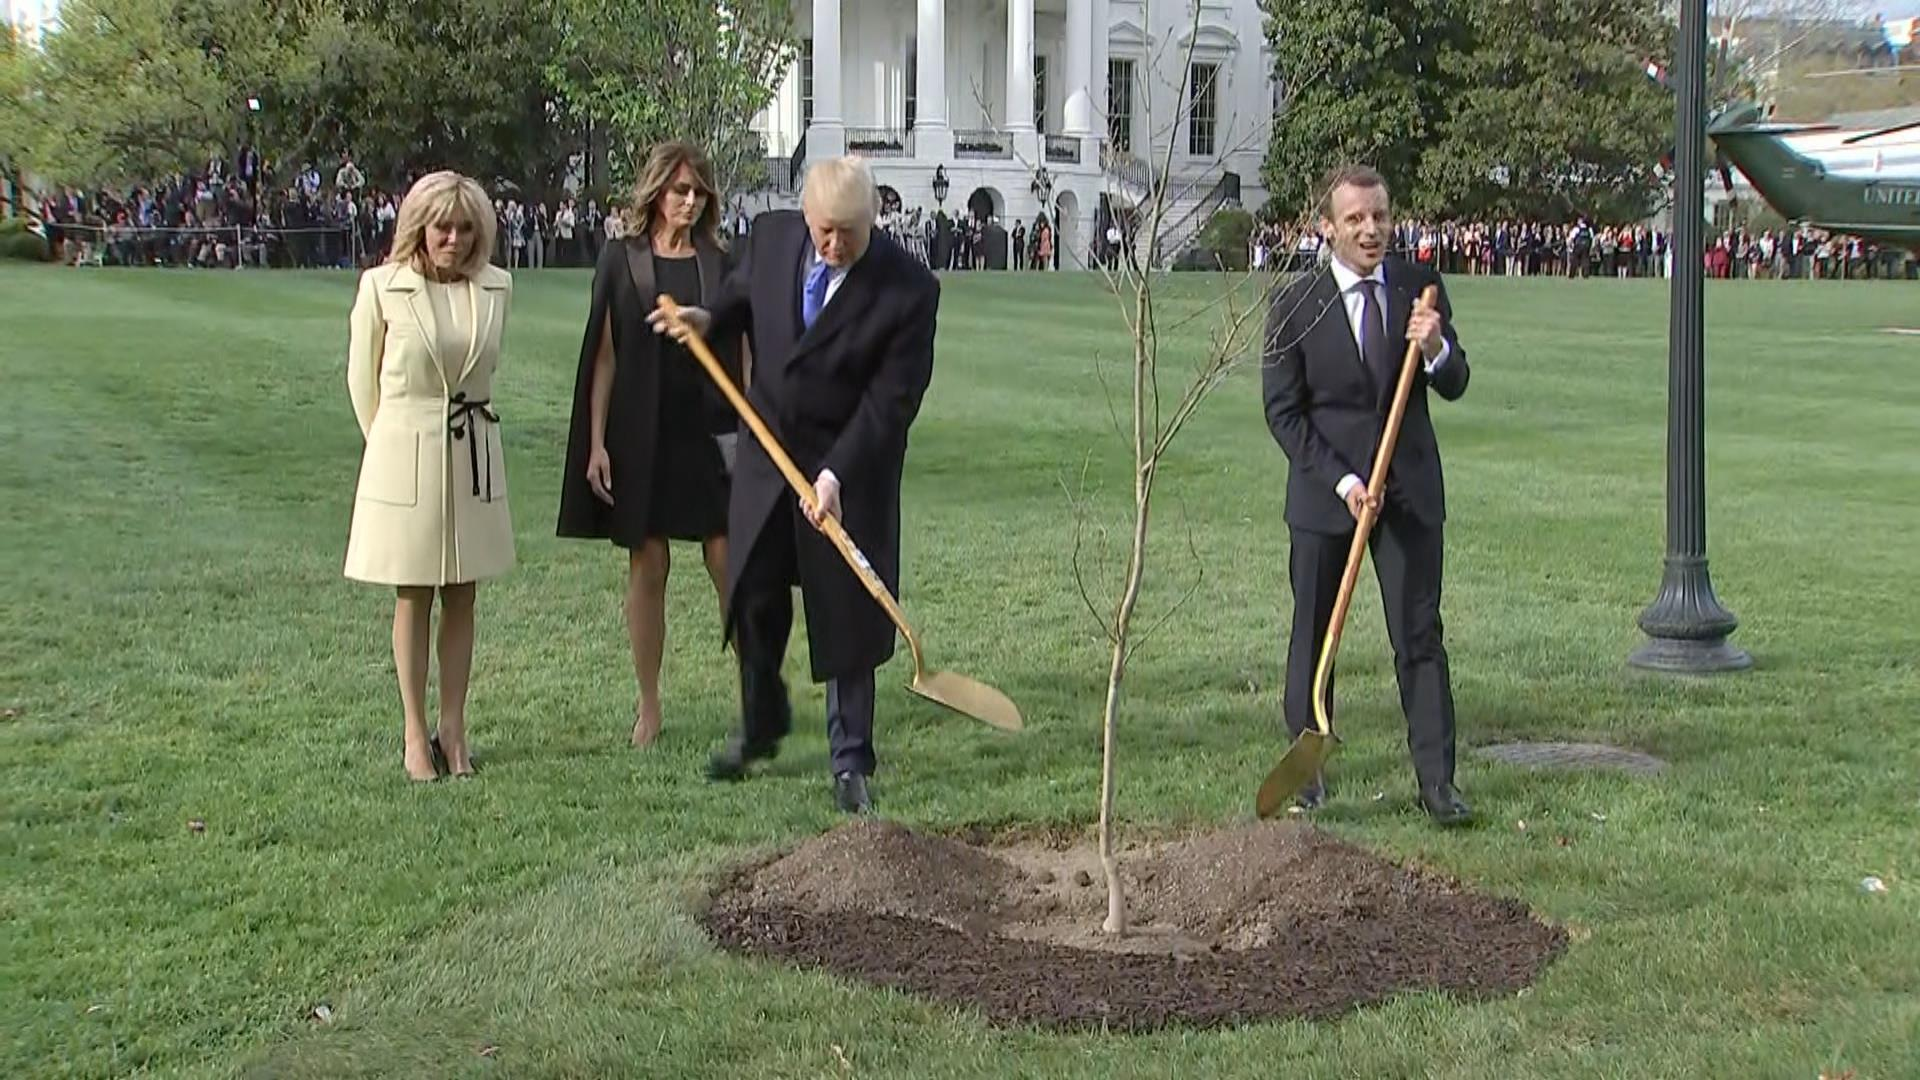 Mystery on the White House South Lawn